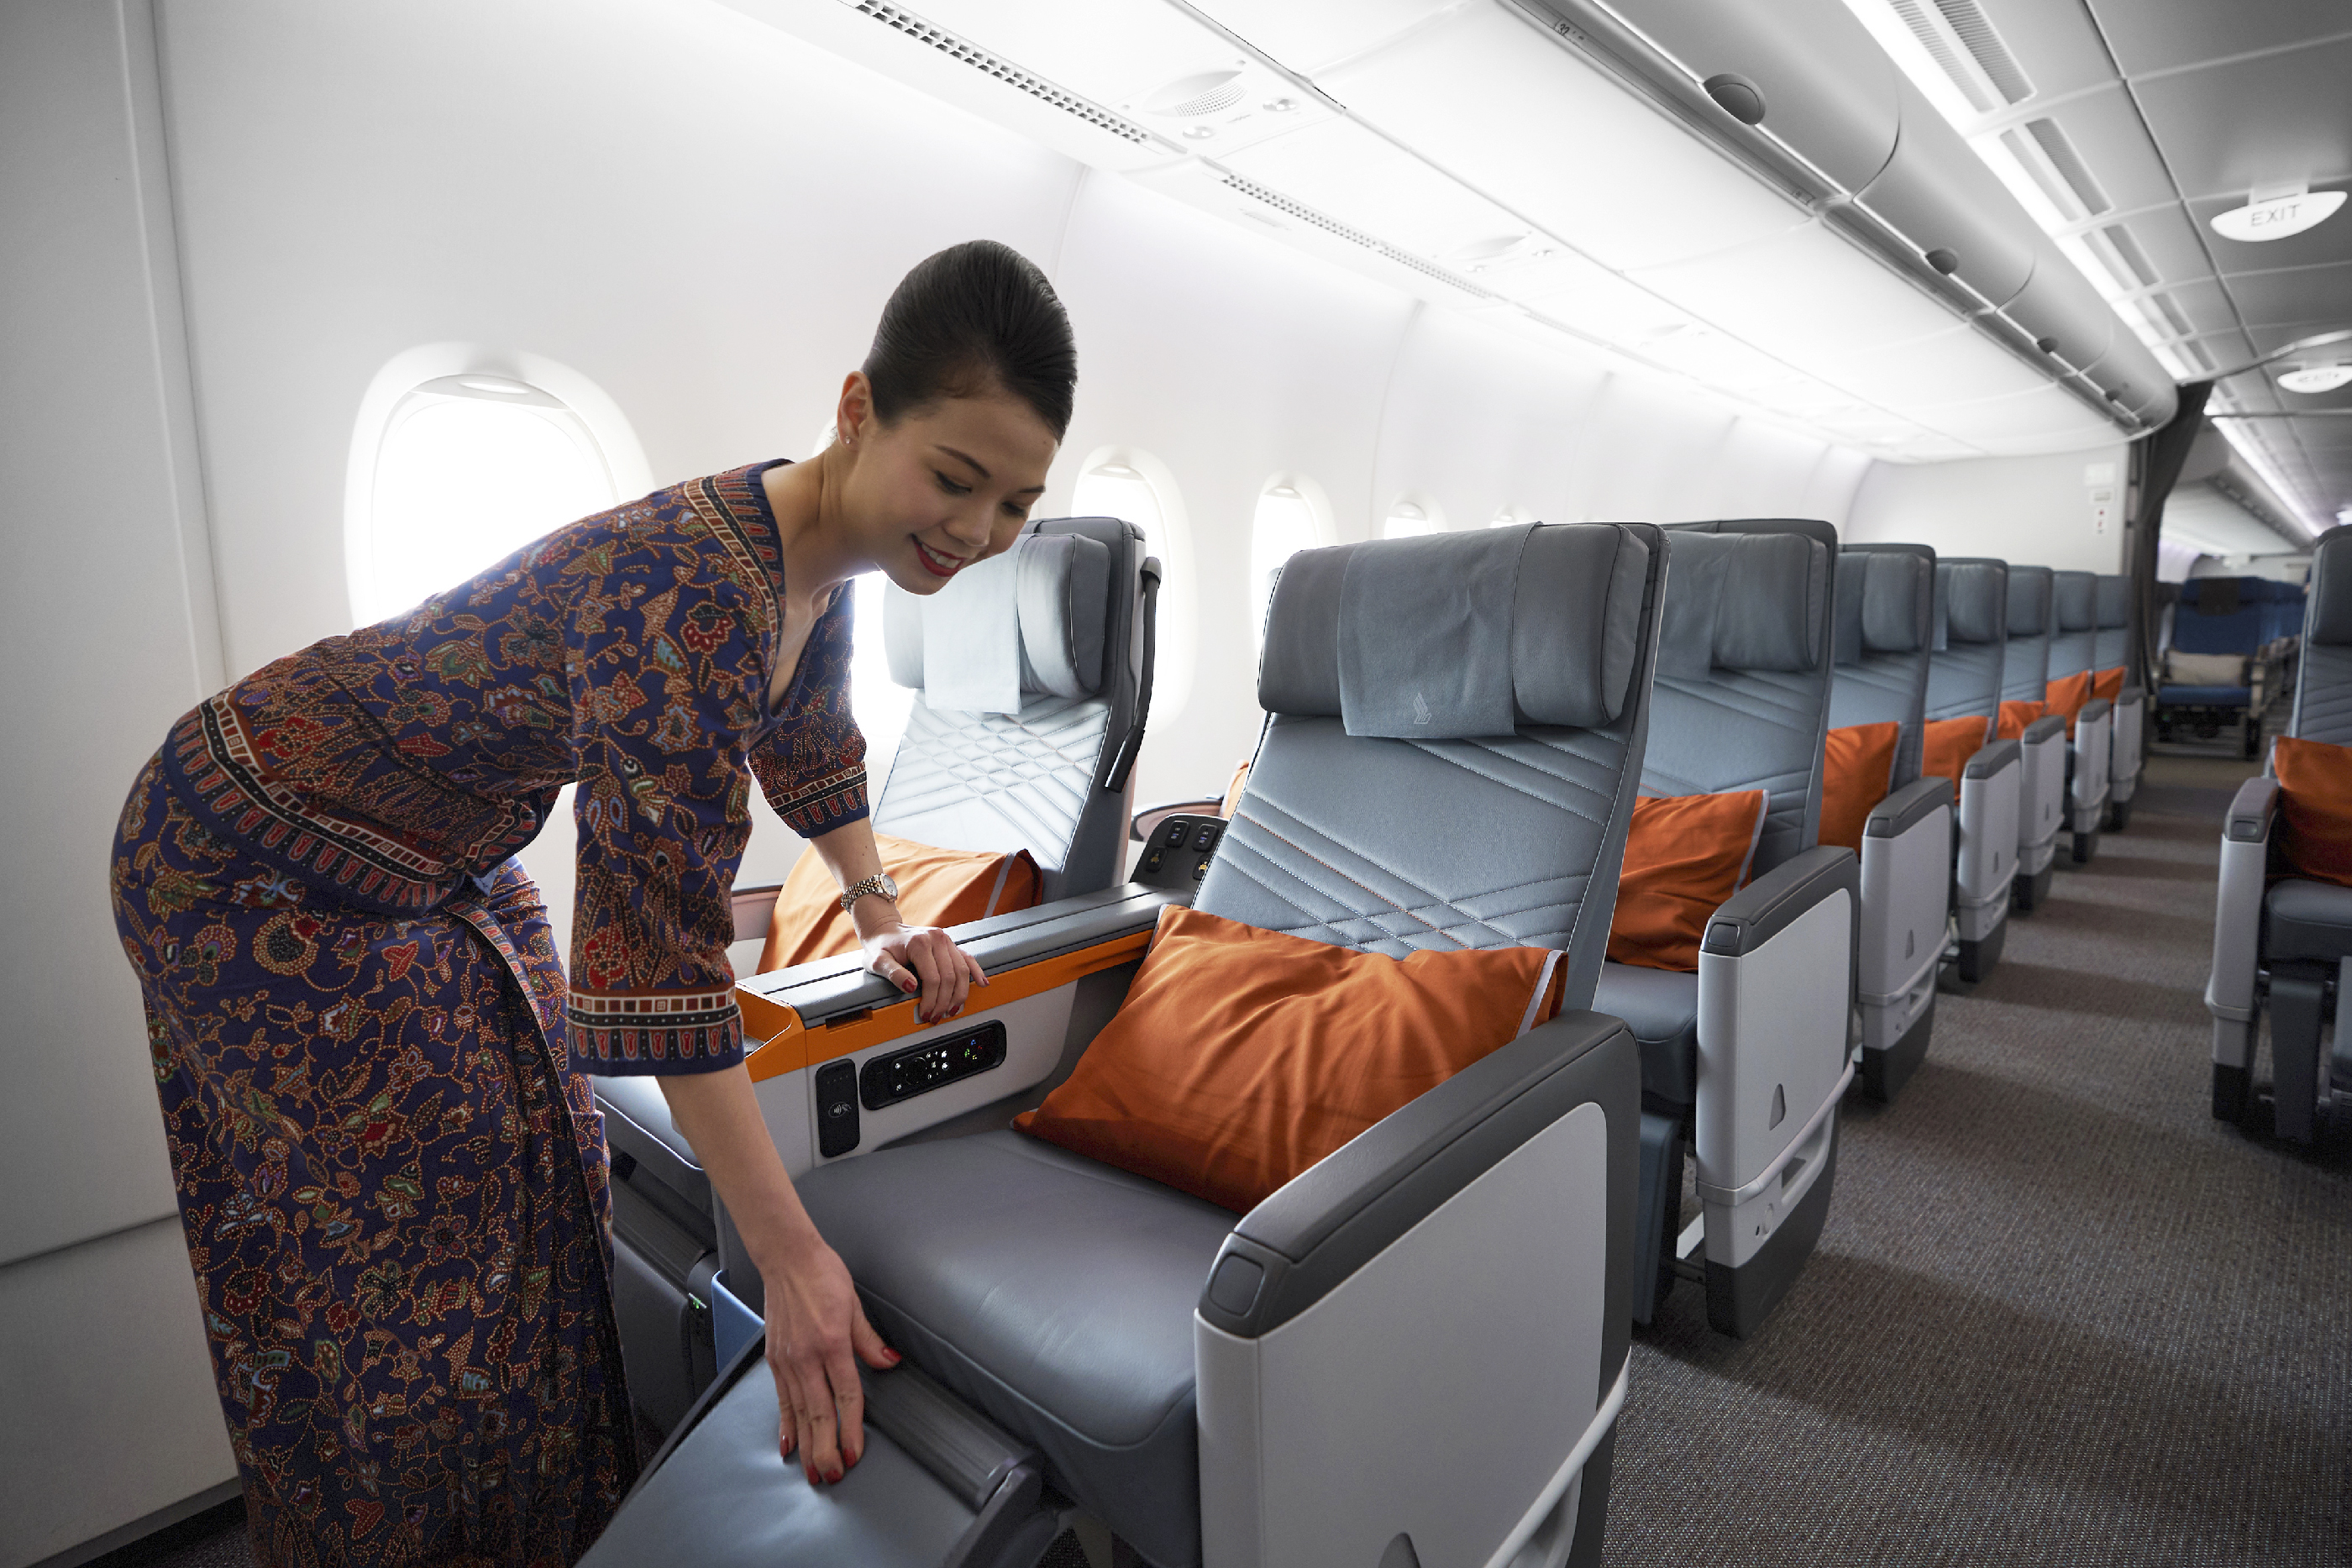 Singapore Airlines CEO Goh Choon Phong and Airbus COO Fabrice Bregier Unveil SE A380 with Refitted Cabins